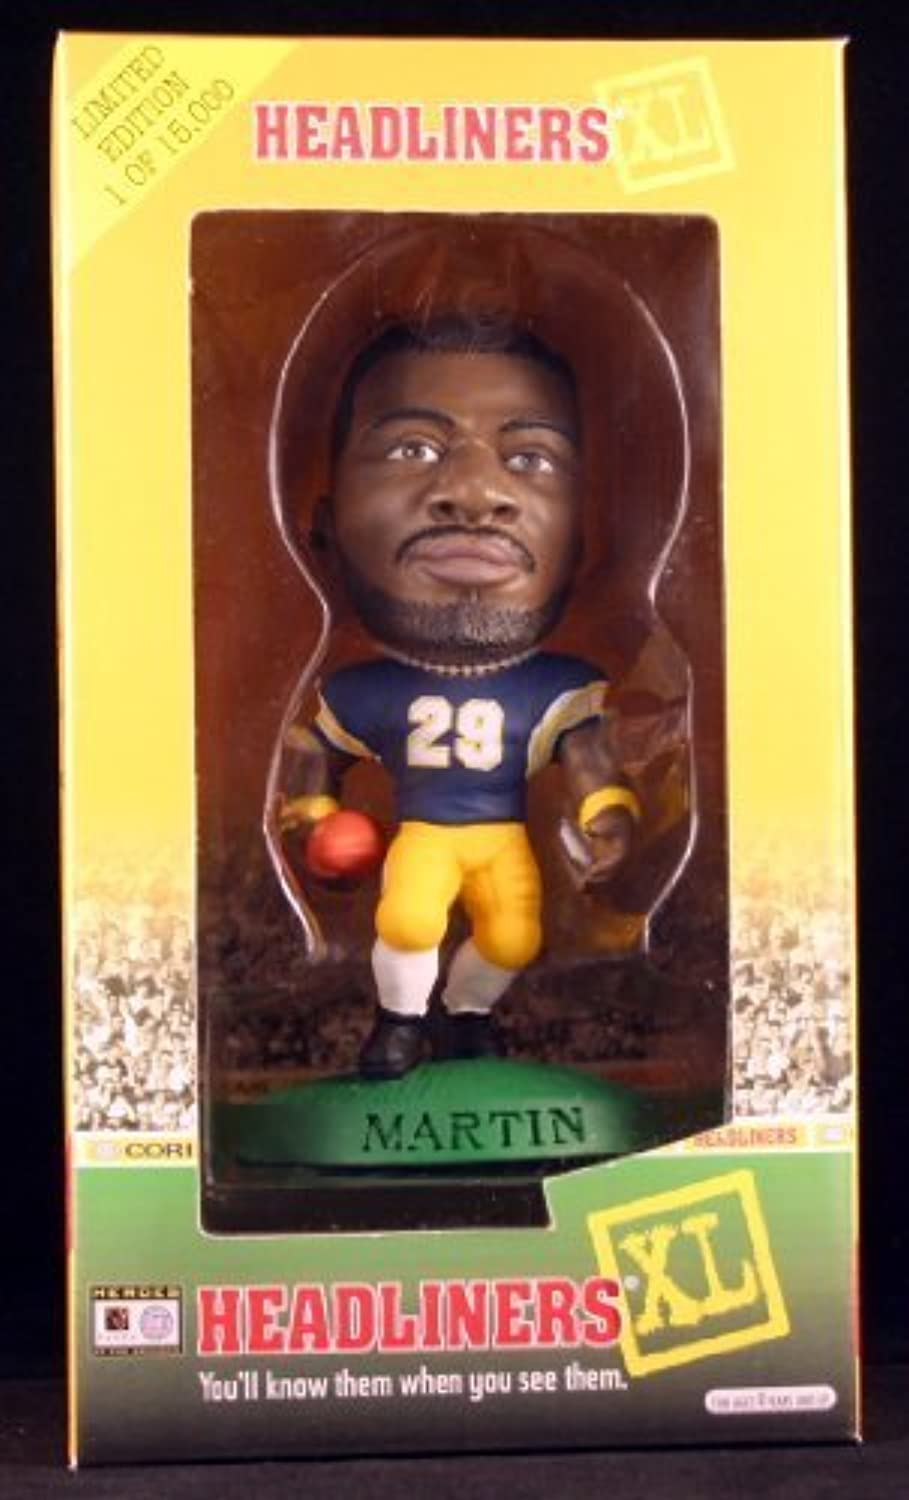 CURTIS MARTIN   UNIVERSITY OF PITTSBURGH PANTHERS 1998 Limited Edition Headliners XL Premier Collection  1 of only 15,000  by Headliners